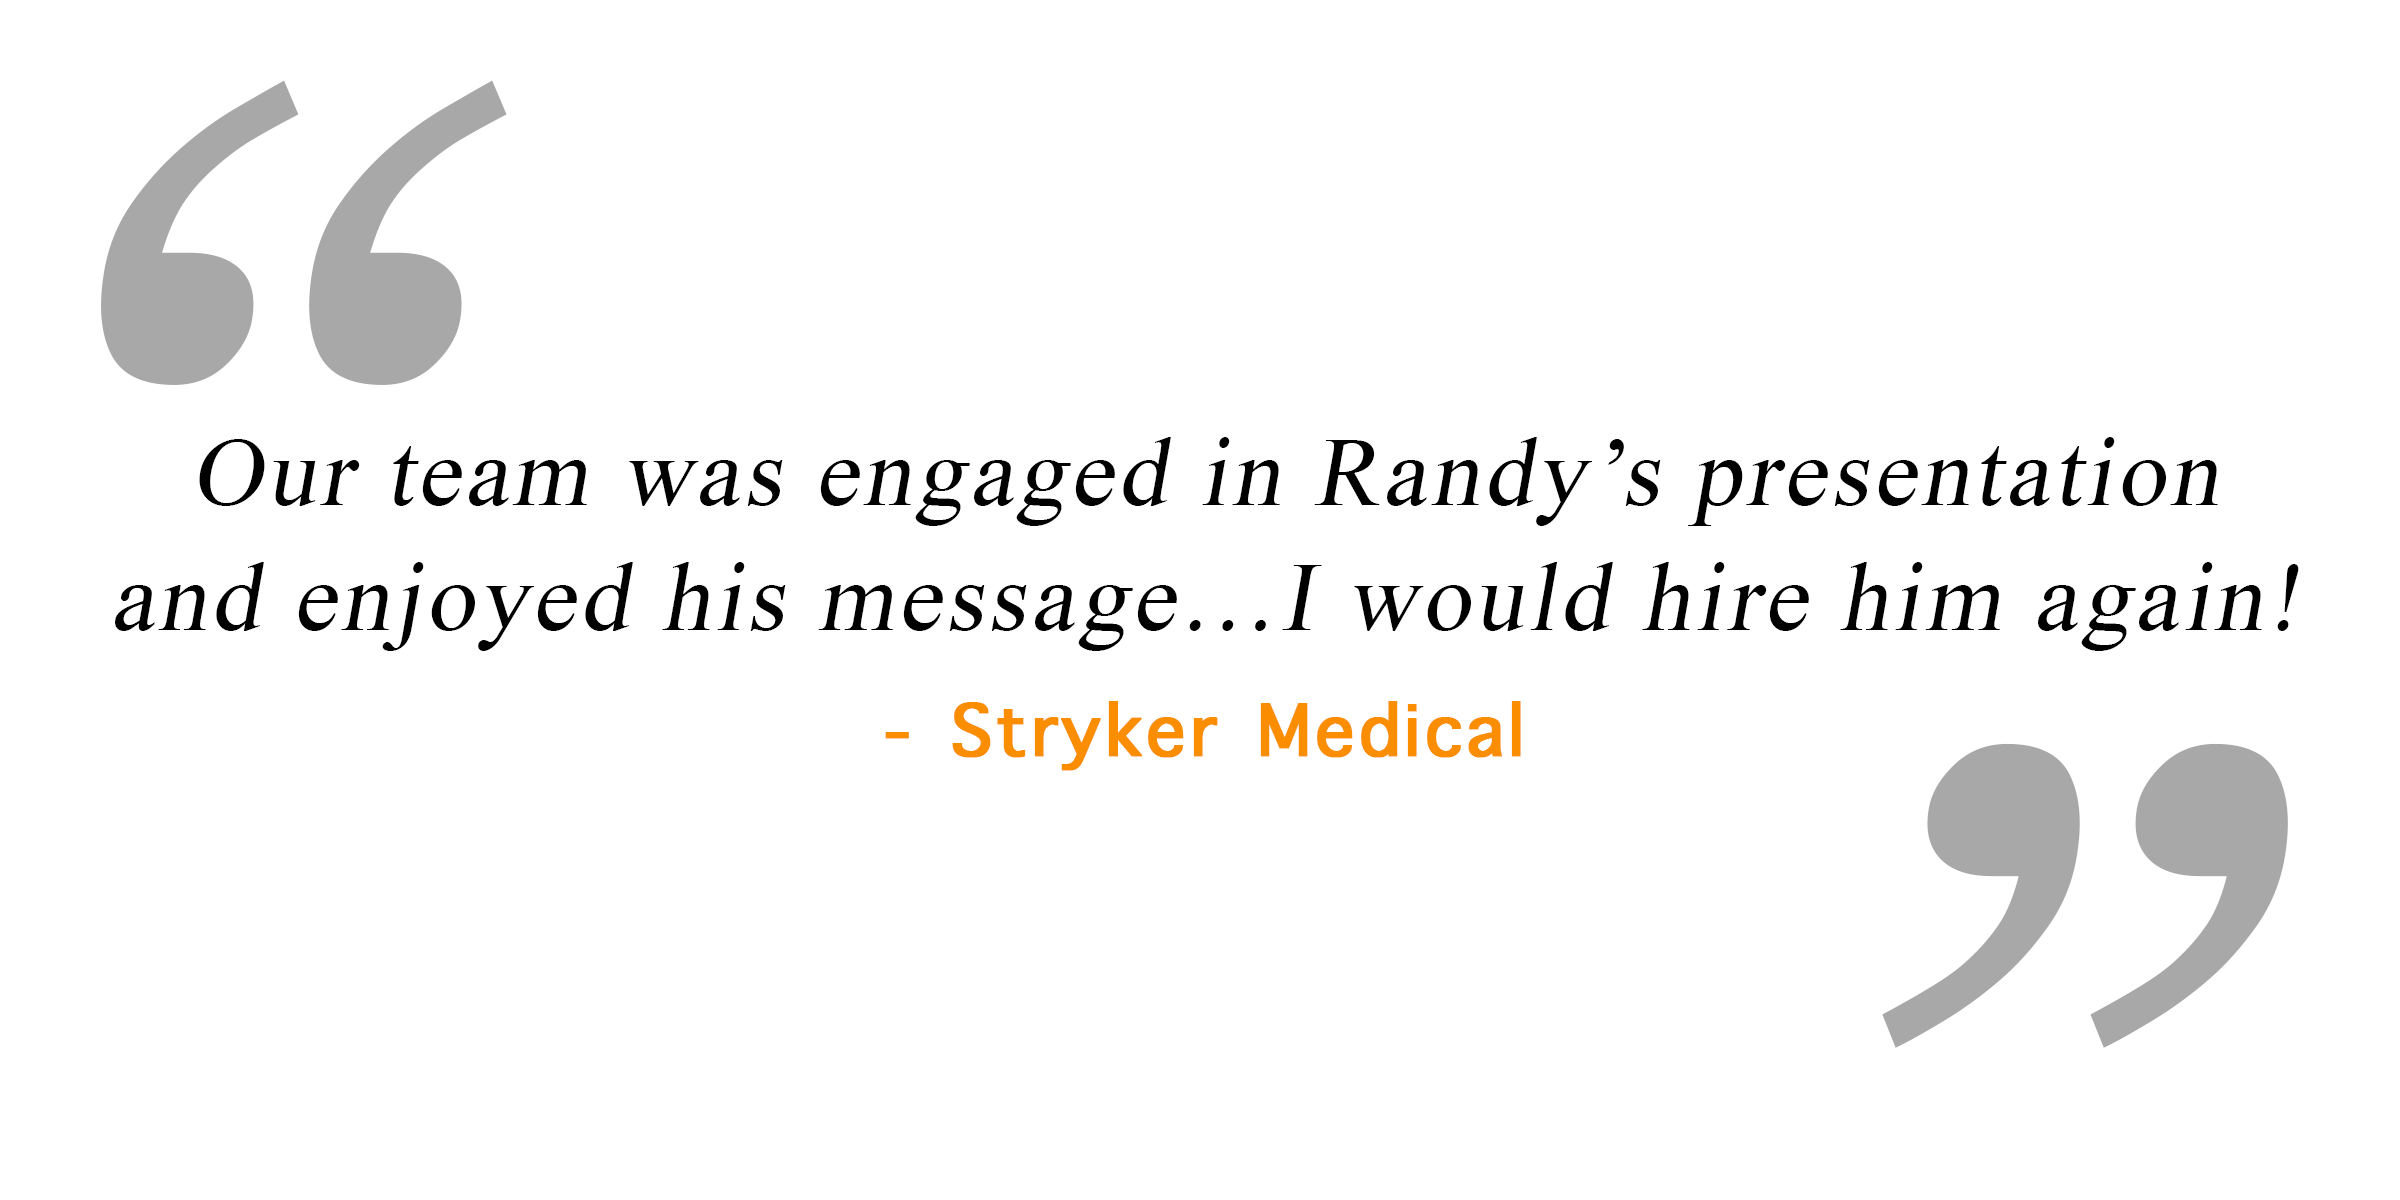 Quotes_Stryker Medical.png